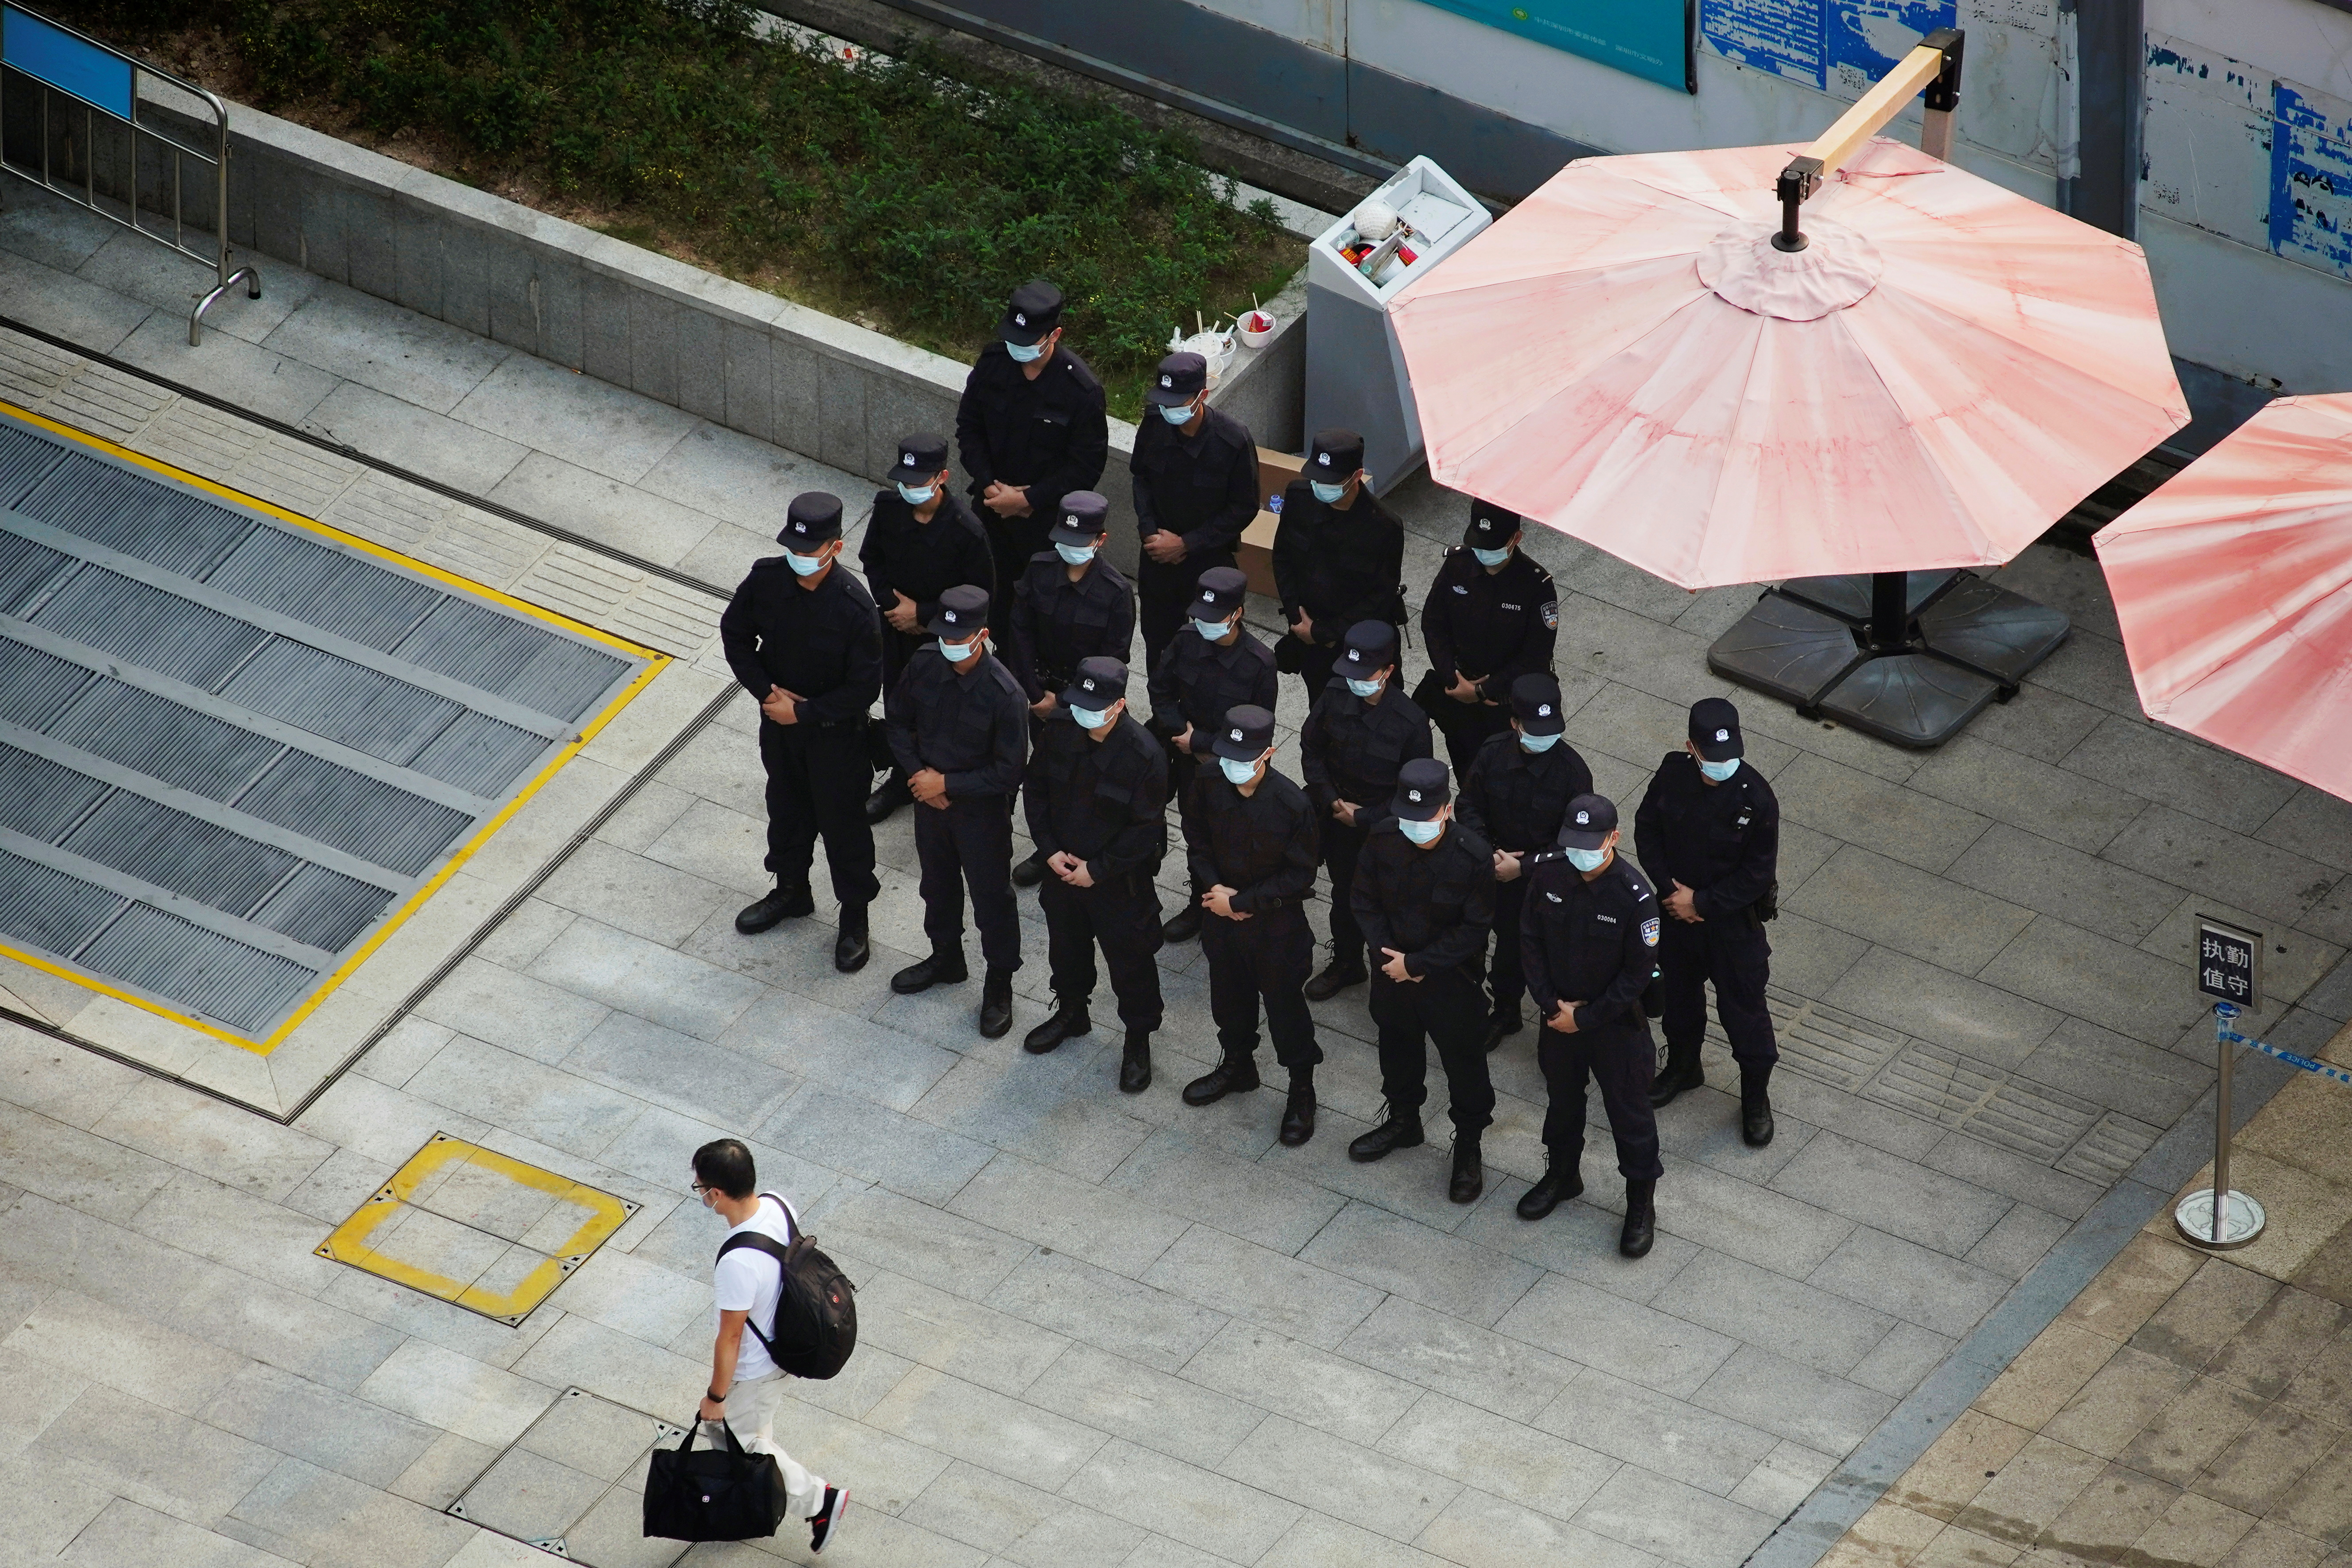 A man walks past security personnel standing on duty outside the headquarters of China Evergrande Group in Shenzhen, Guangdong province, China, September 30, 2021. REUTERS/Aly Song